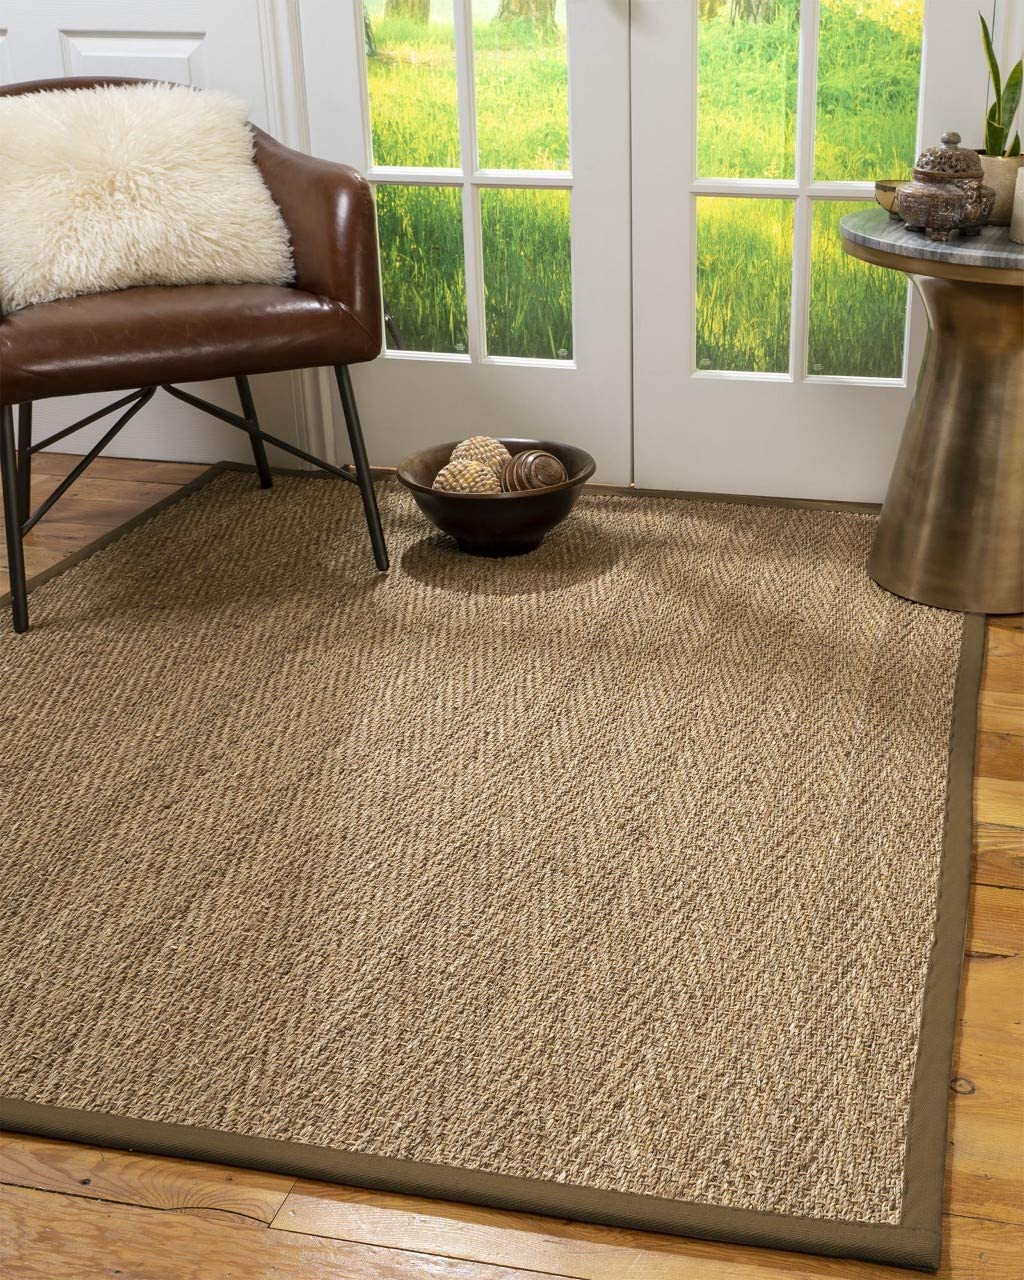 Natural Area Rugs 100 , Natural Fiber Handmade Beach, Natural Seagrass Rug 9 x 12 Malt Border